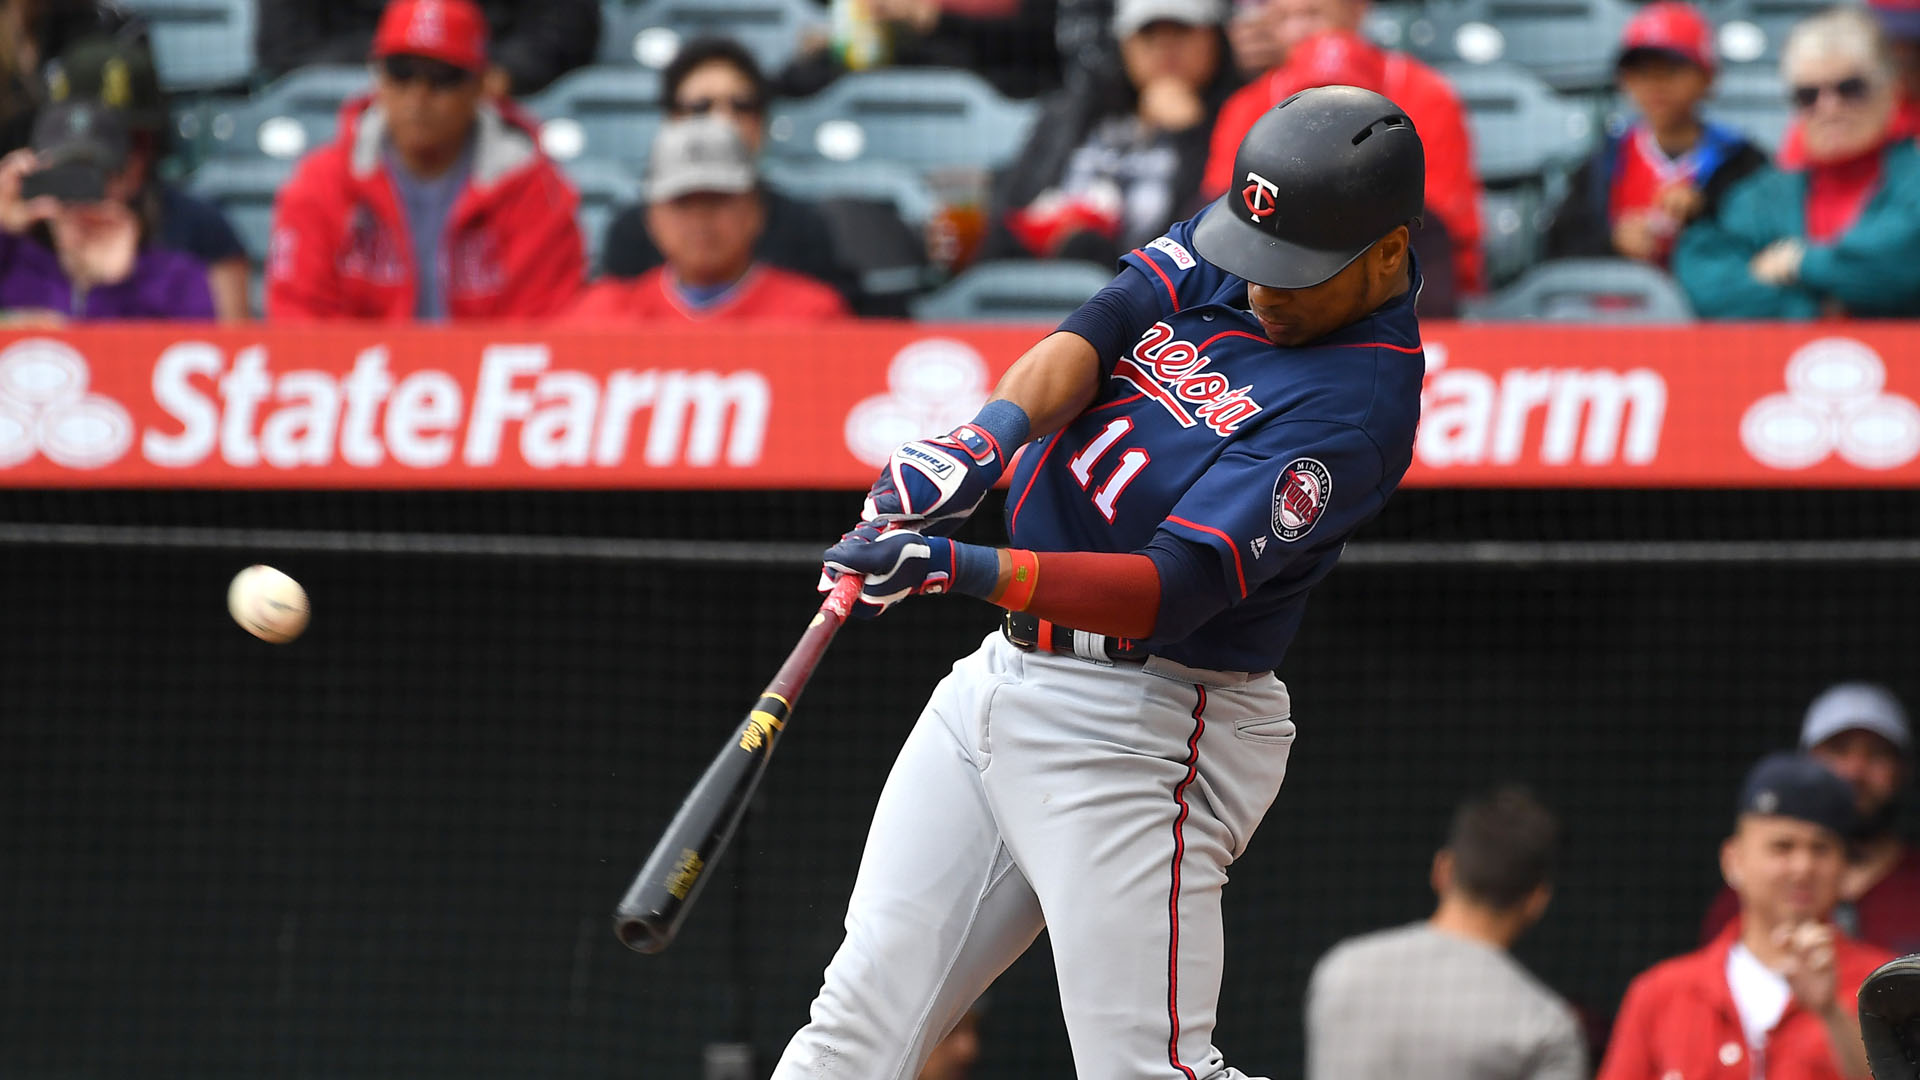 Jorge Polanco trails only Mike Trout among American League position players in WAR.